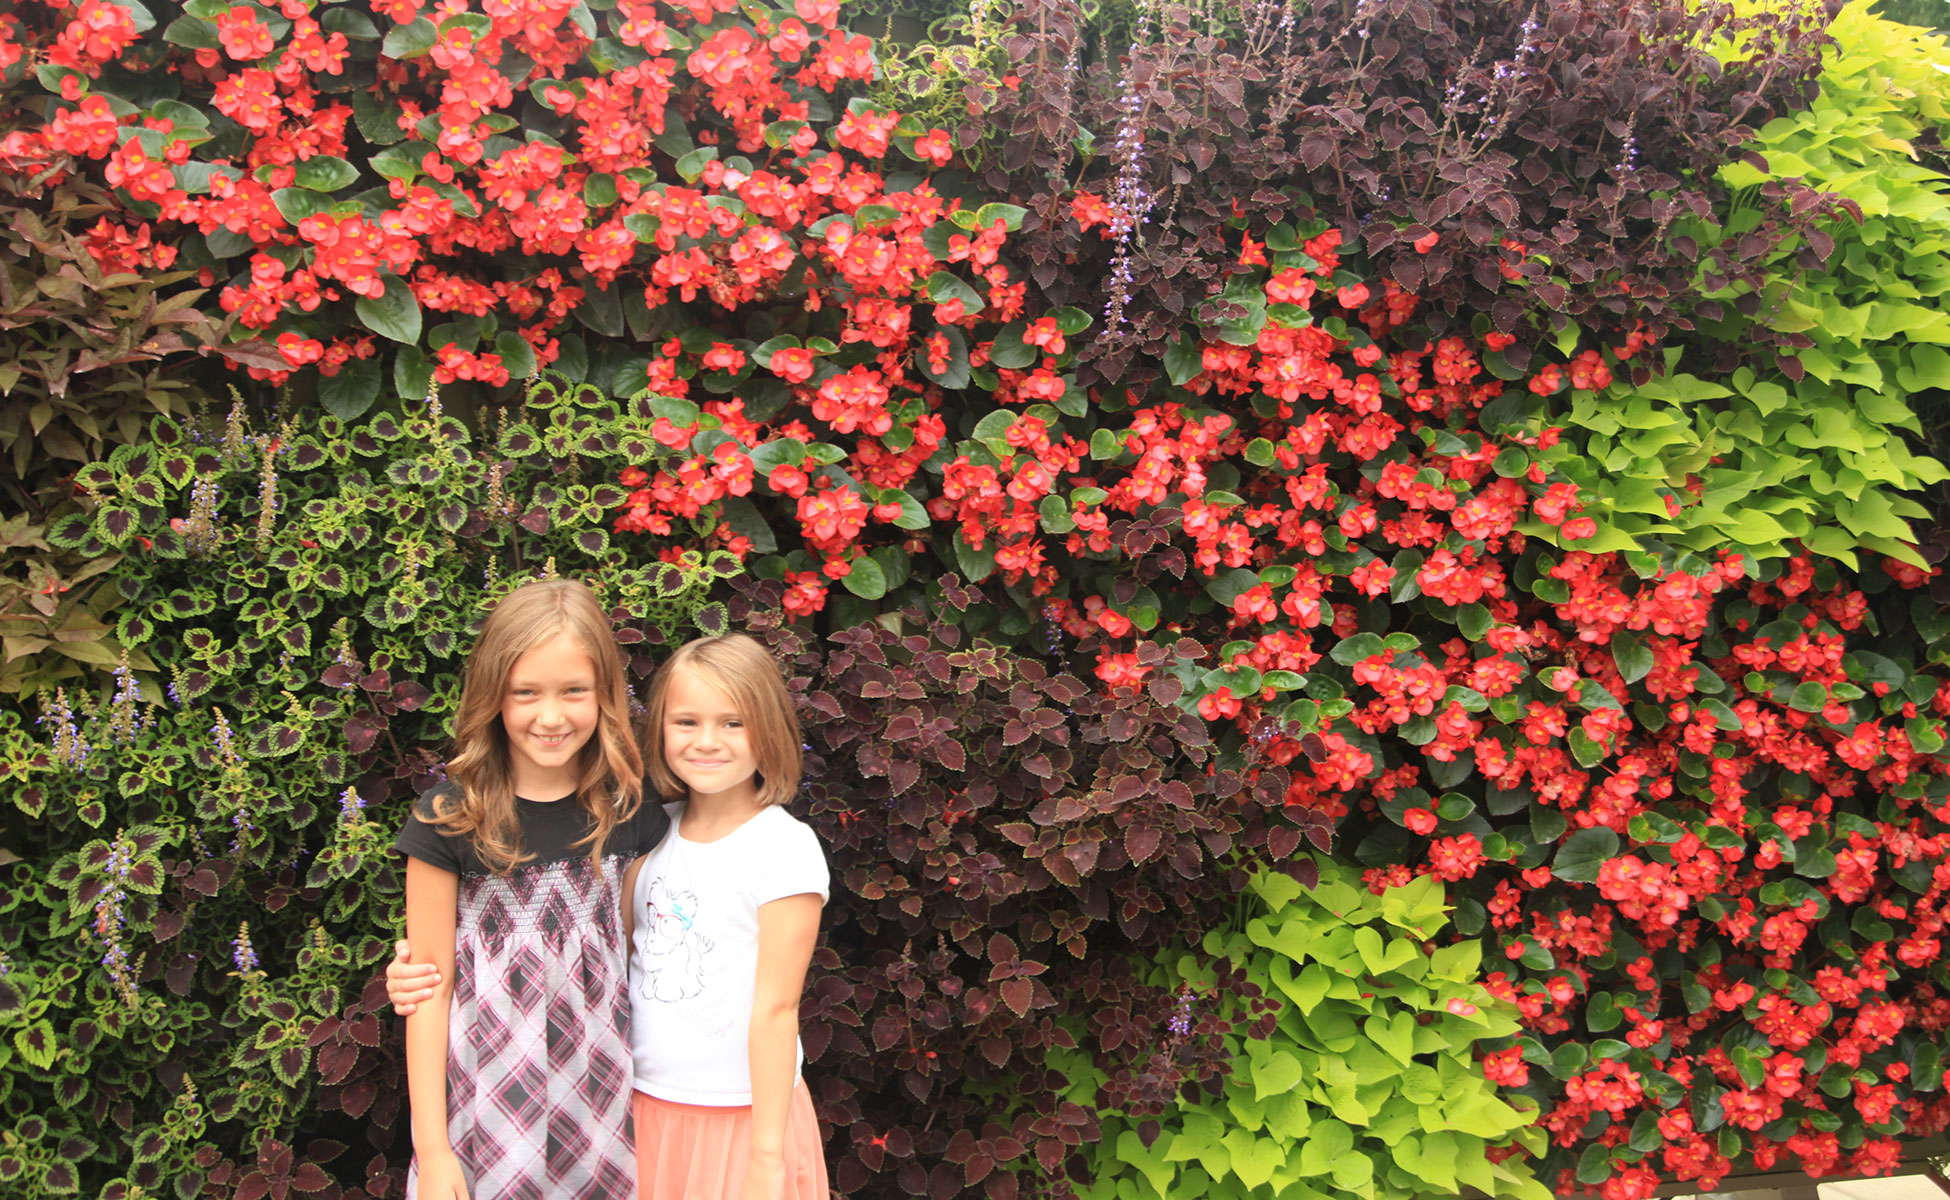 Students with bright colored flowers and vines in living wall.